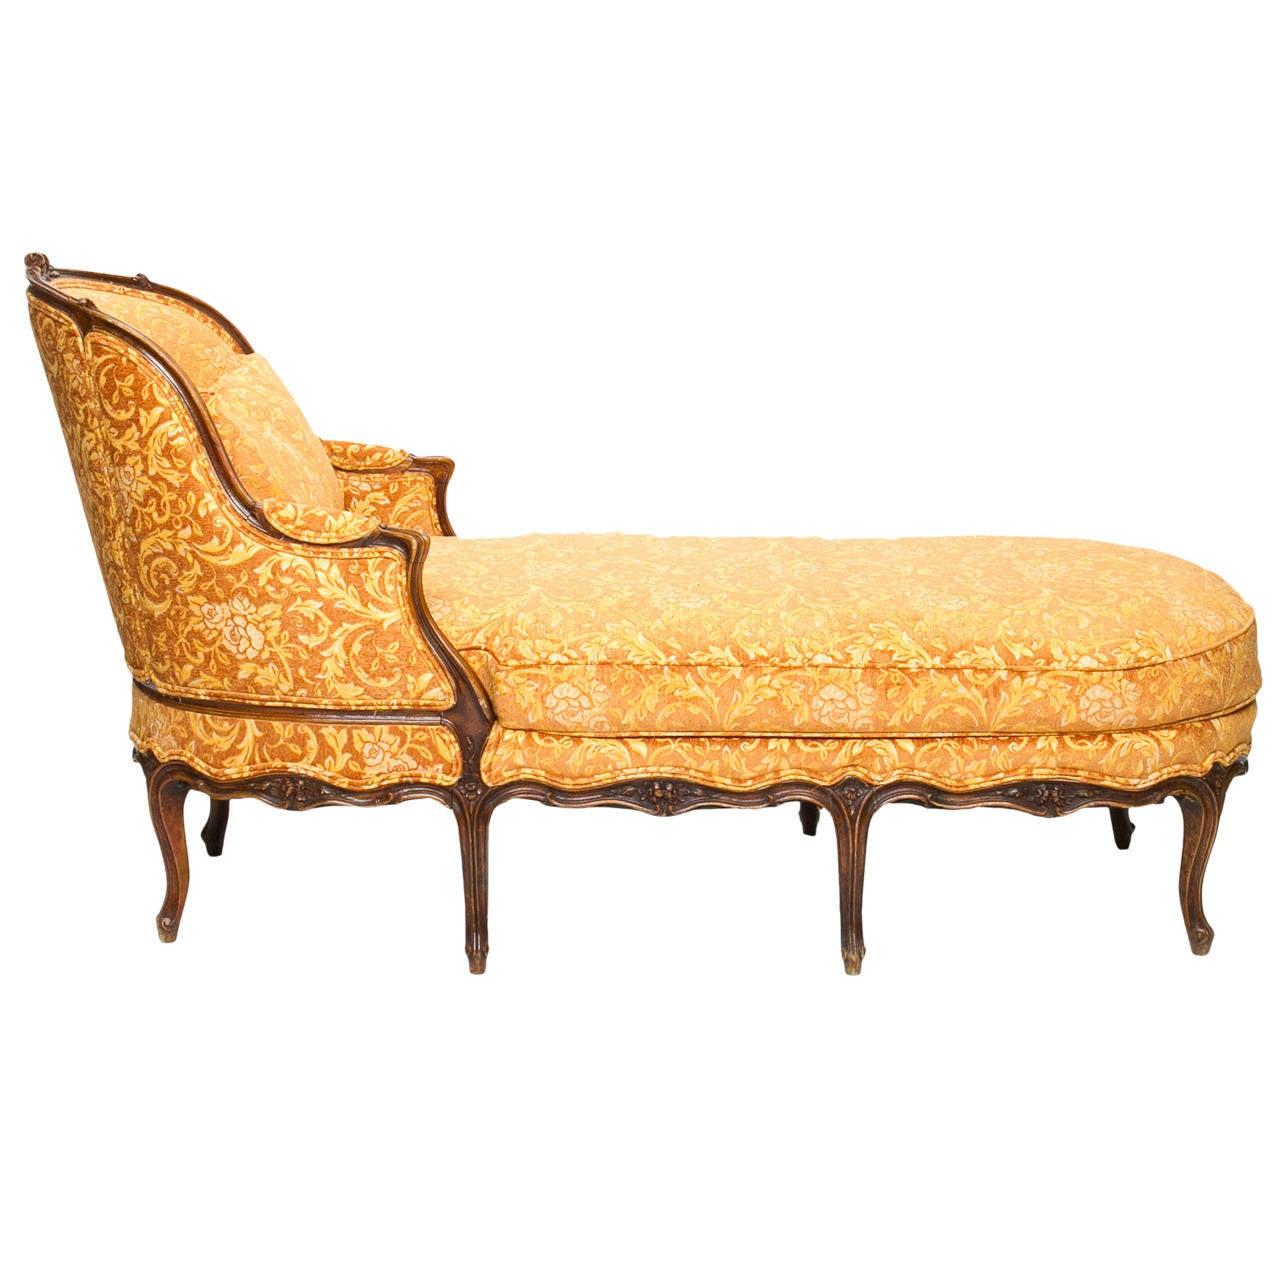 19th century louis xv chaise longue at 1stdibs for Chaise louis xv